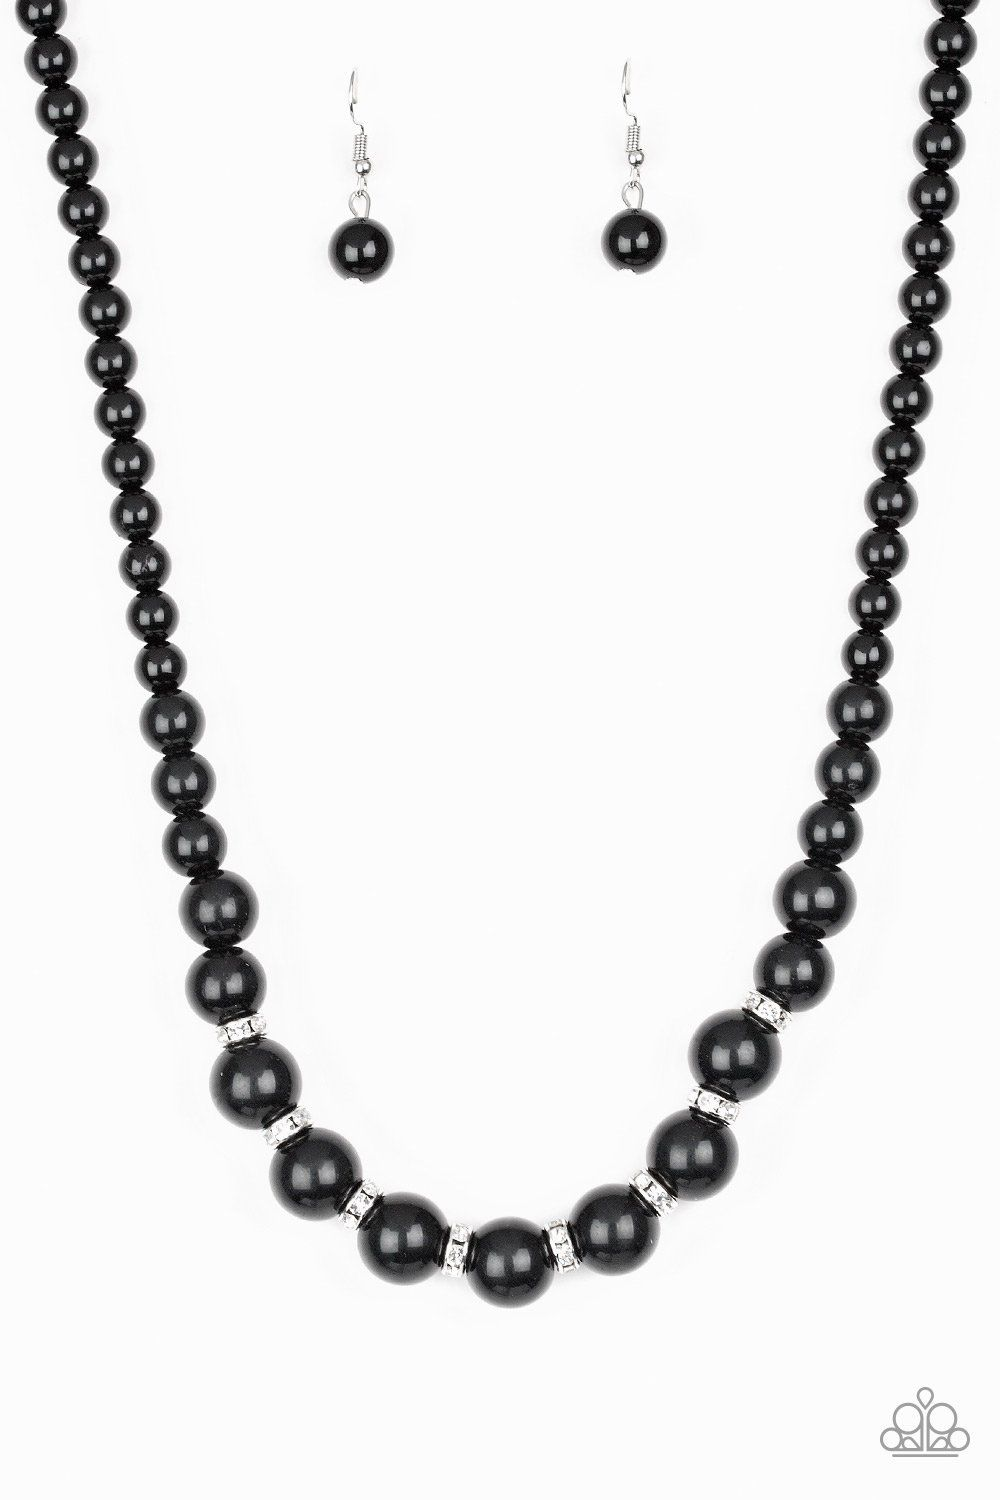 dd718177c040 Showtime Shimmer Black Necklace and Earring Set - Paparazzi Jewelry ...